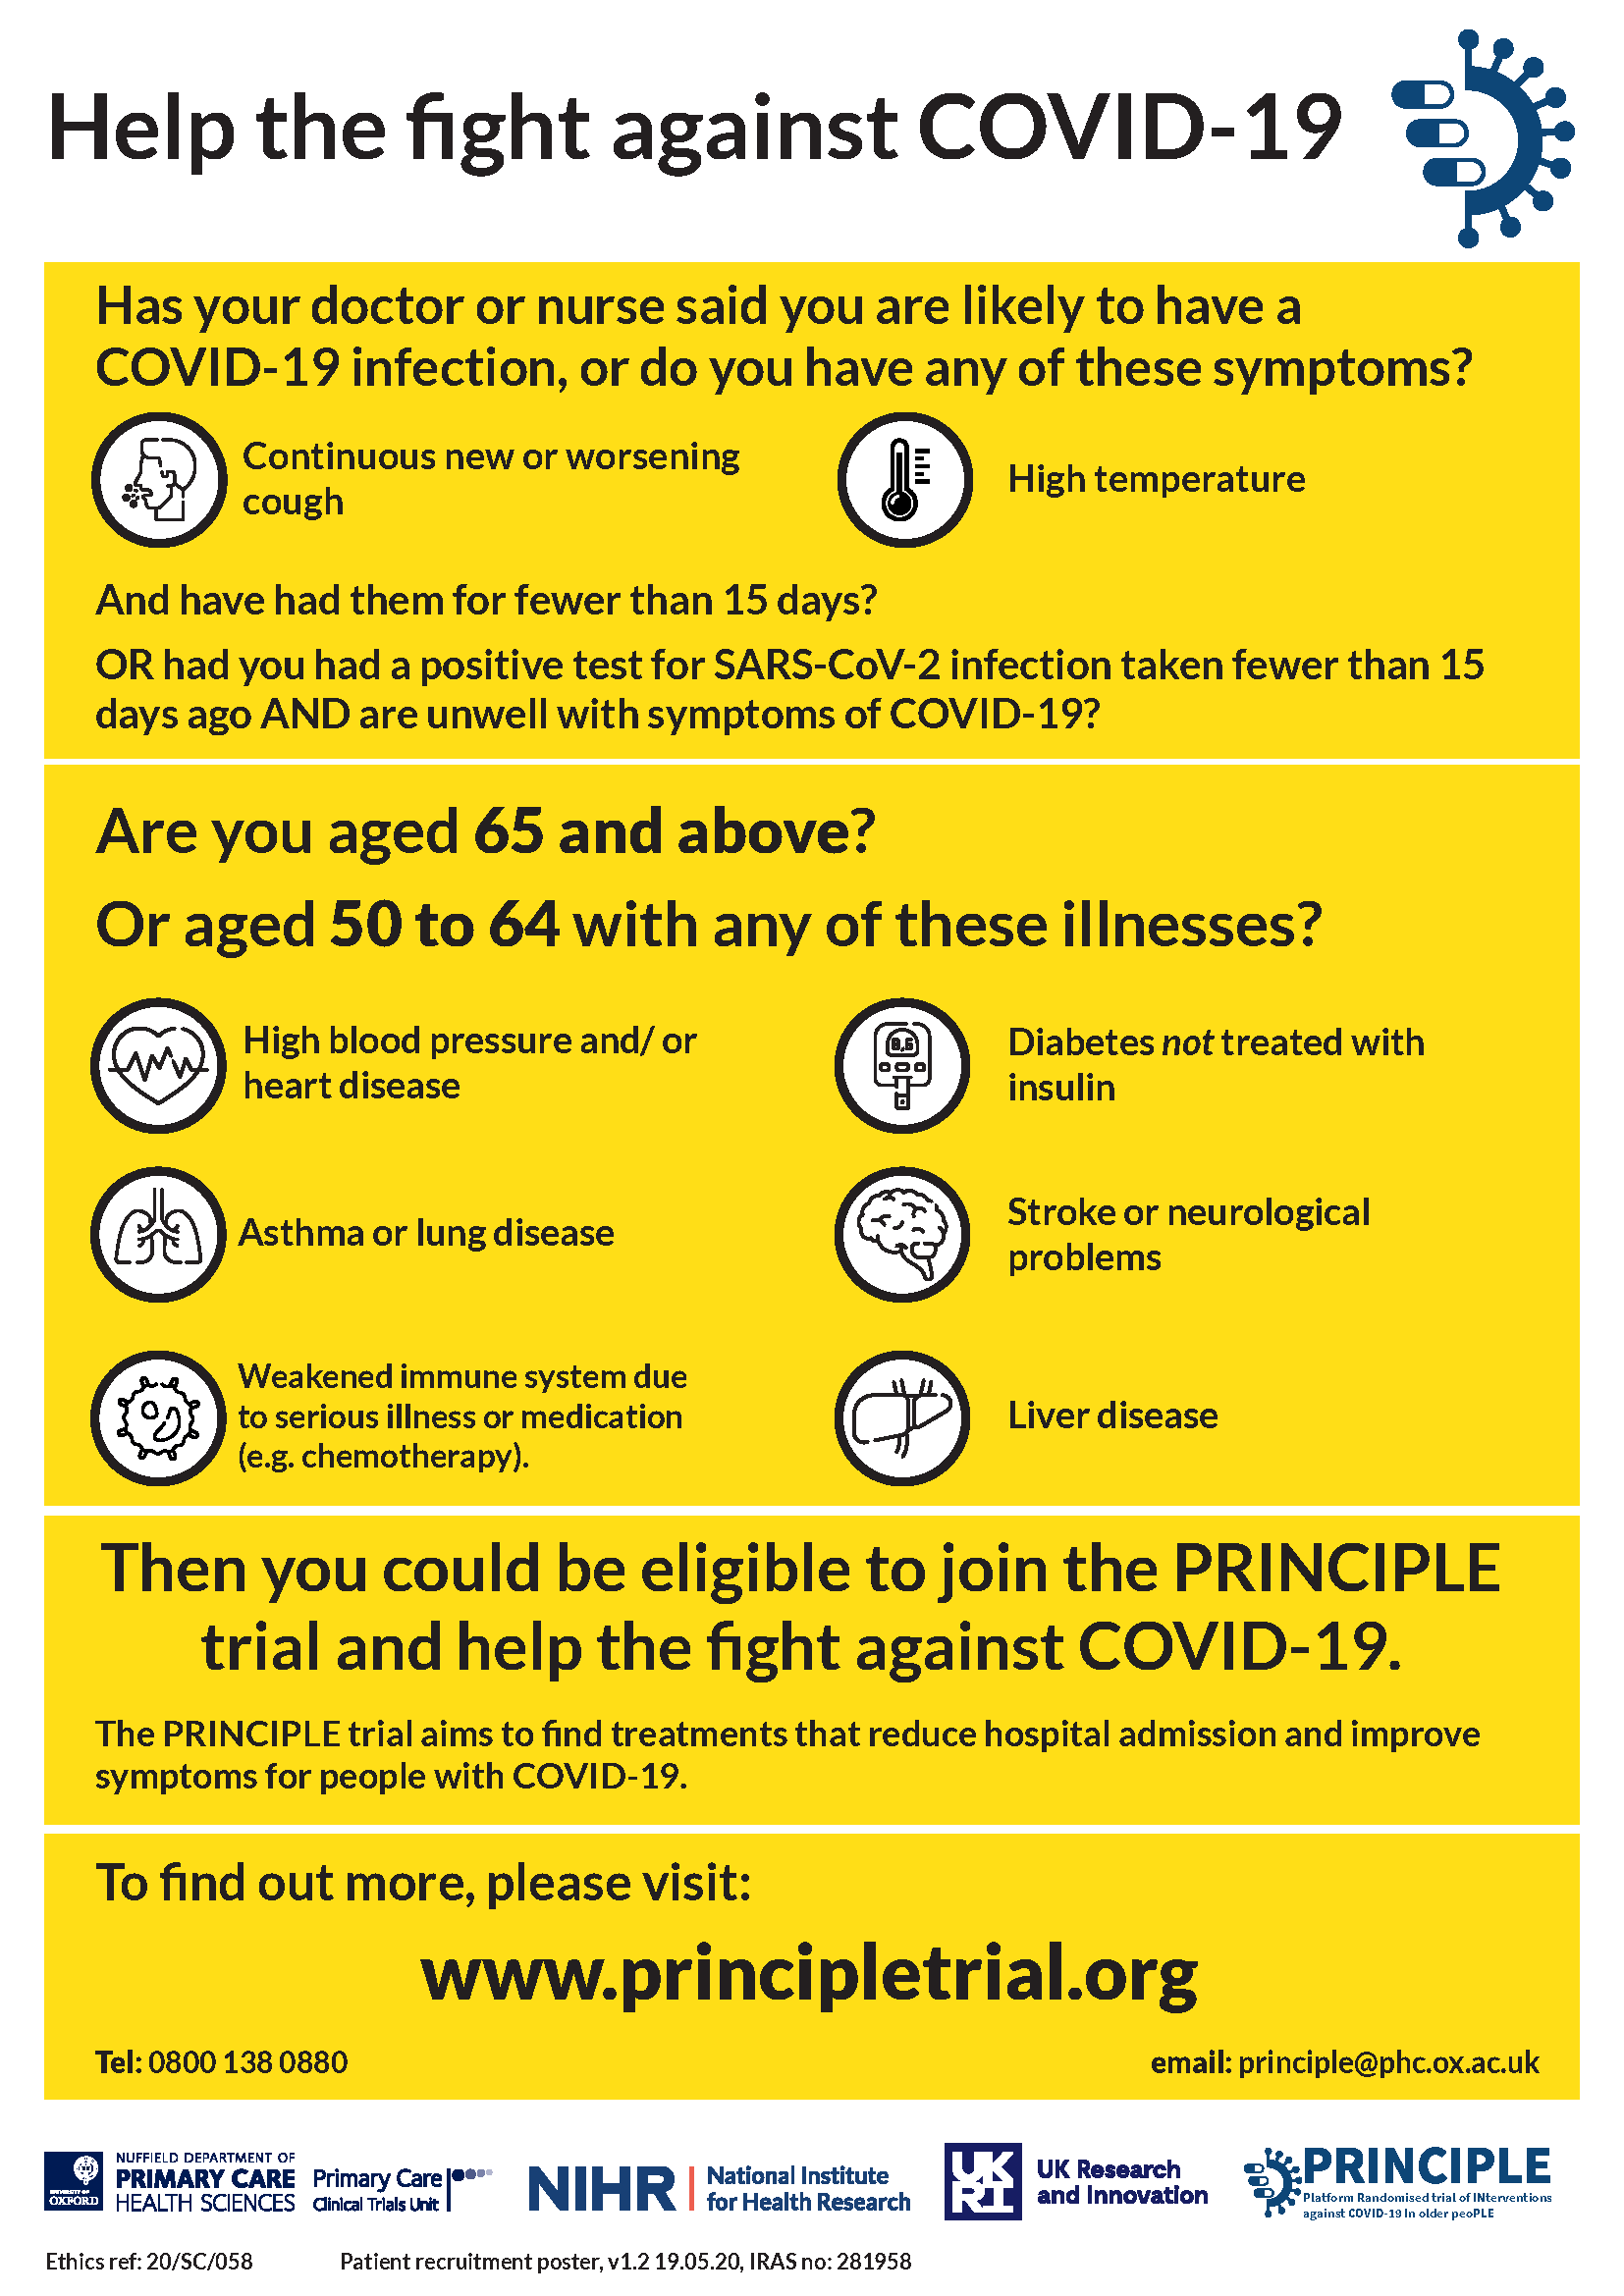 Covid-19 trial poster